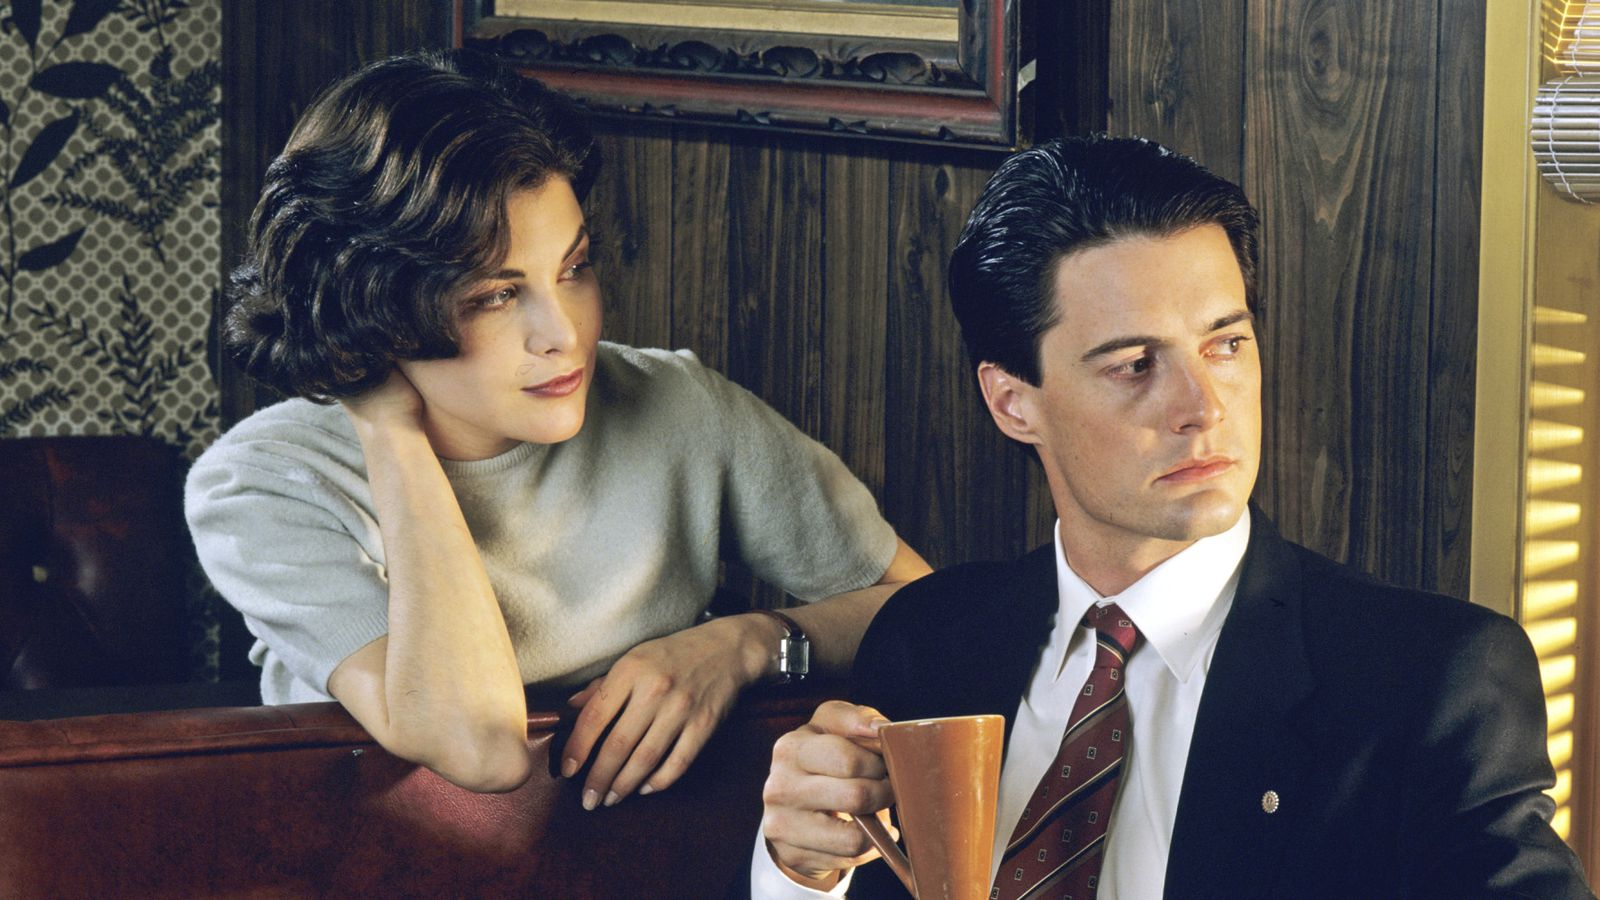 Catch up with Twin Peaks in three minutes before the third season